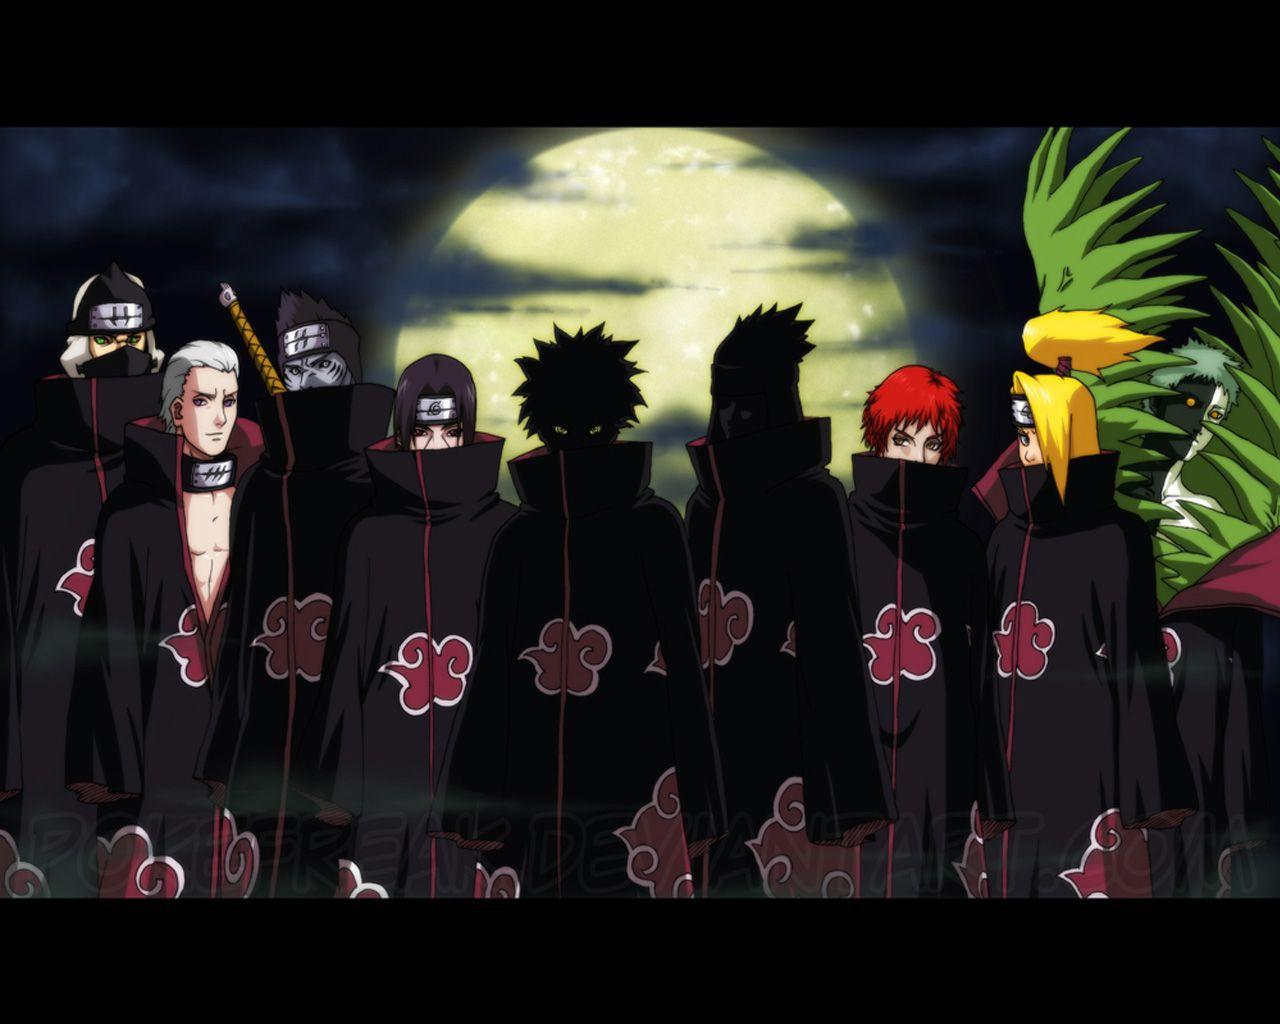 Akatsuki 972 Hd Wallpapers in Cartoons - Imagesci.com